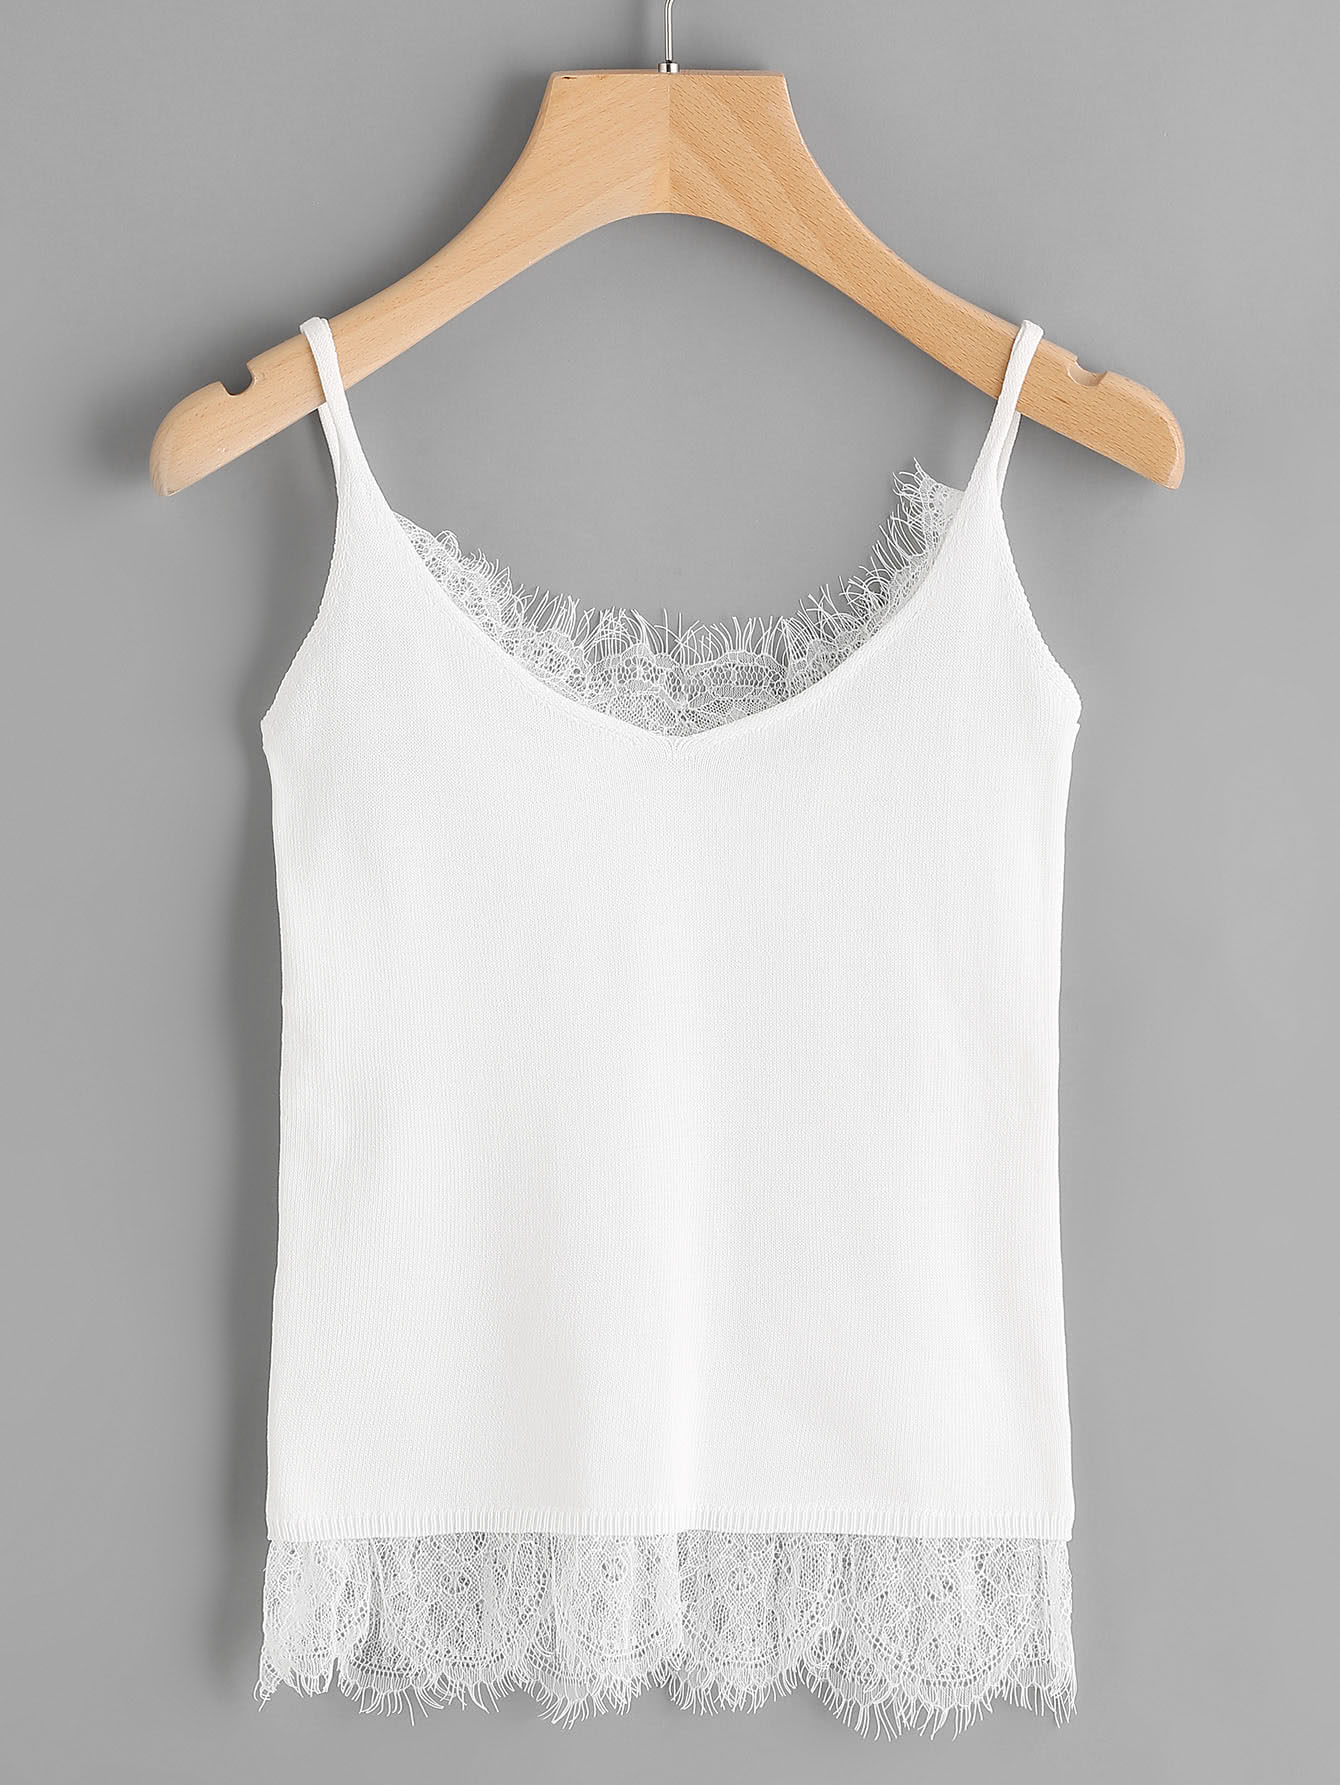 Eyelash Lace Trim Cami Top hamlet